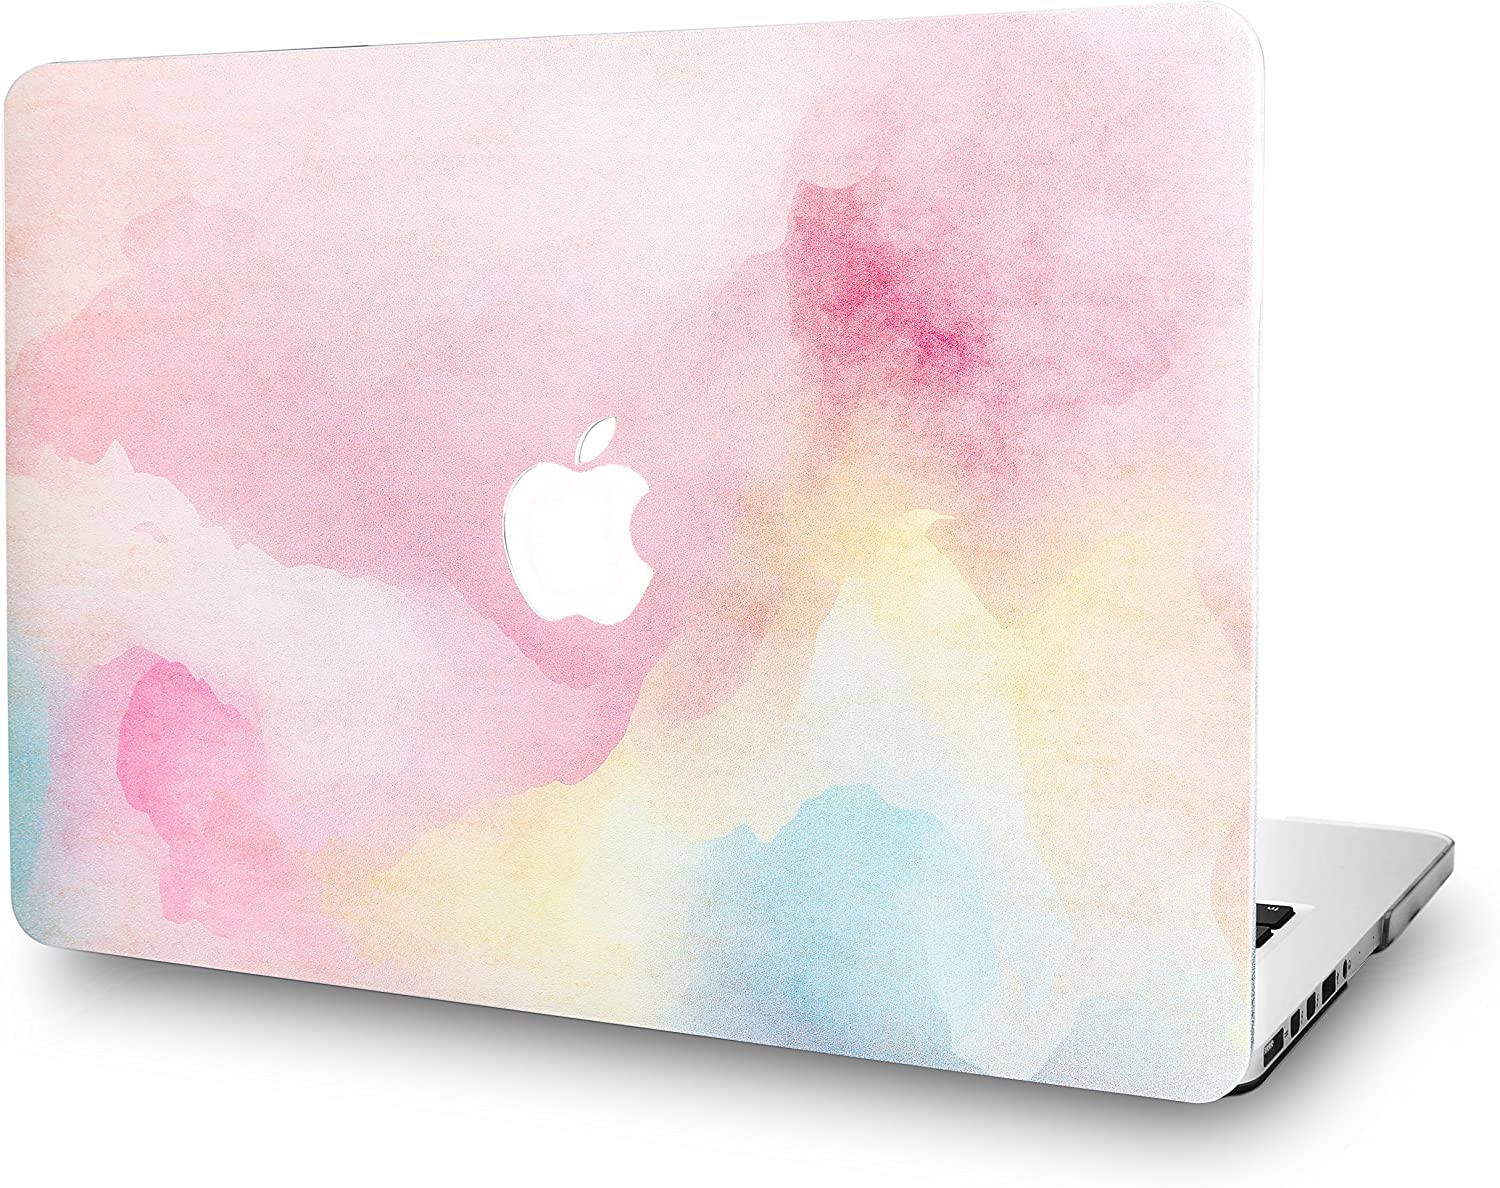 KECC Laptop Case for MacBook Air 13 Inch Plastic Case Hard Shell Cover A1466/A1369 (Rainbow Mist)